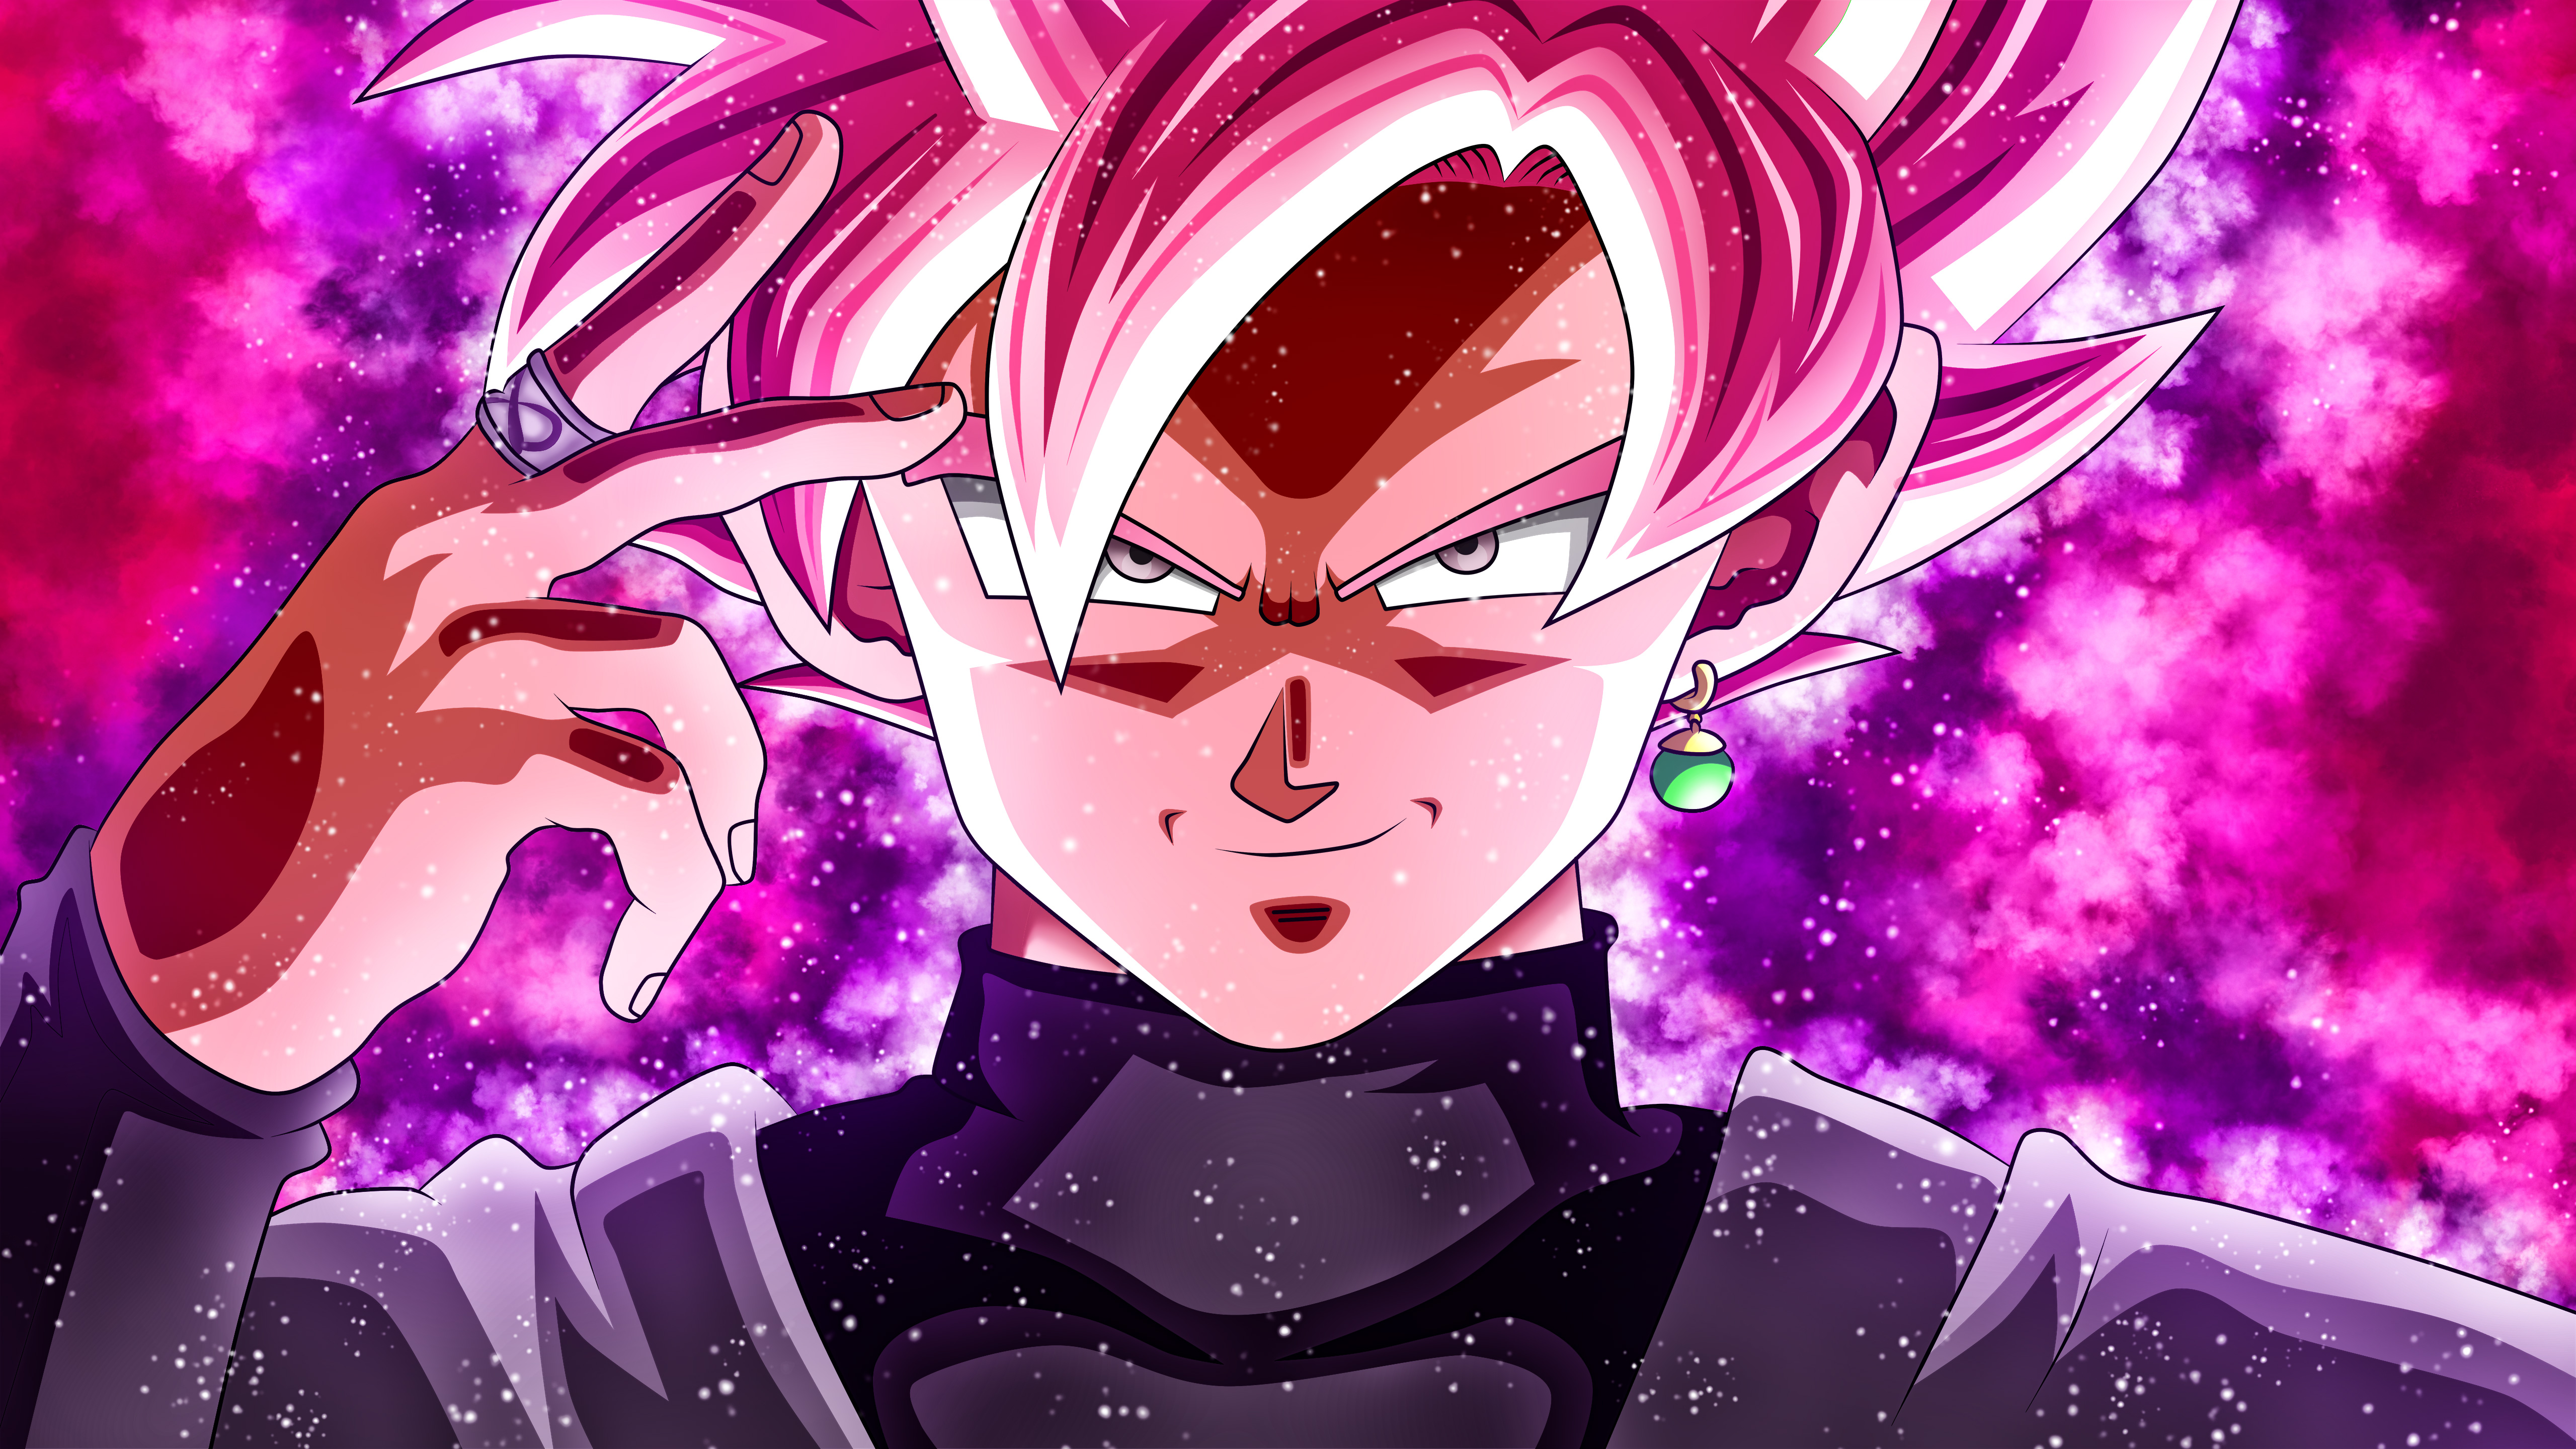 Black Goku Dragon Ball Super, HD Anime, 4k Wallpapers, Images, Backgrounds, Photos and Pictures